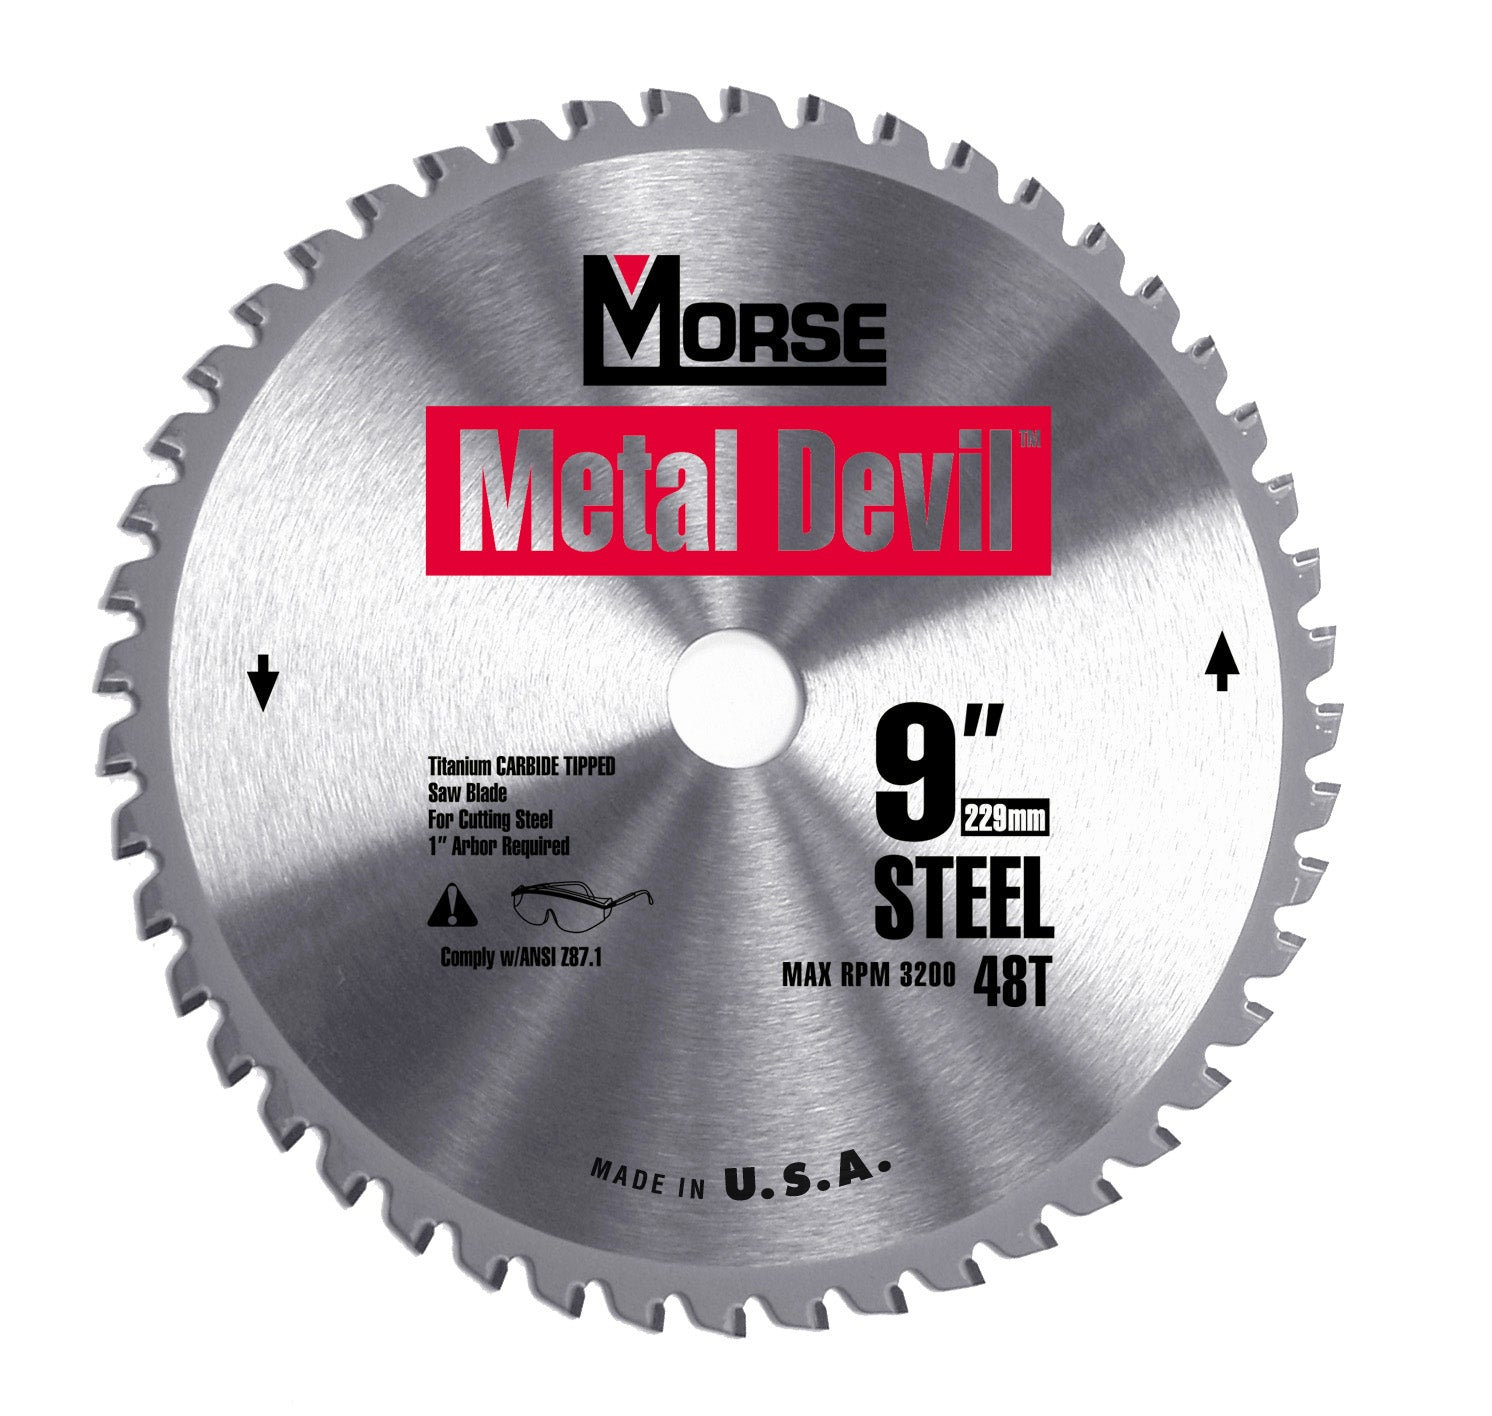 229mm (48 Tooth) Steel Cutting Metal Devil TCT Circular Saw Blade